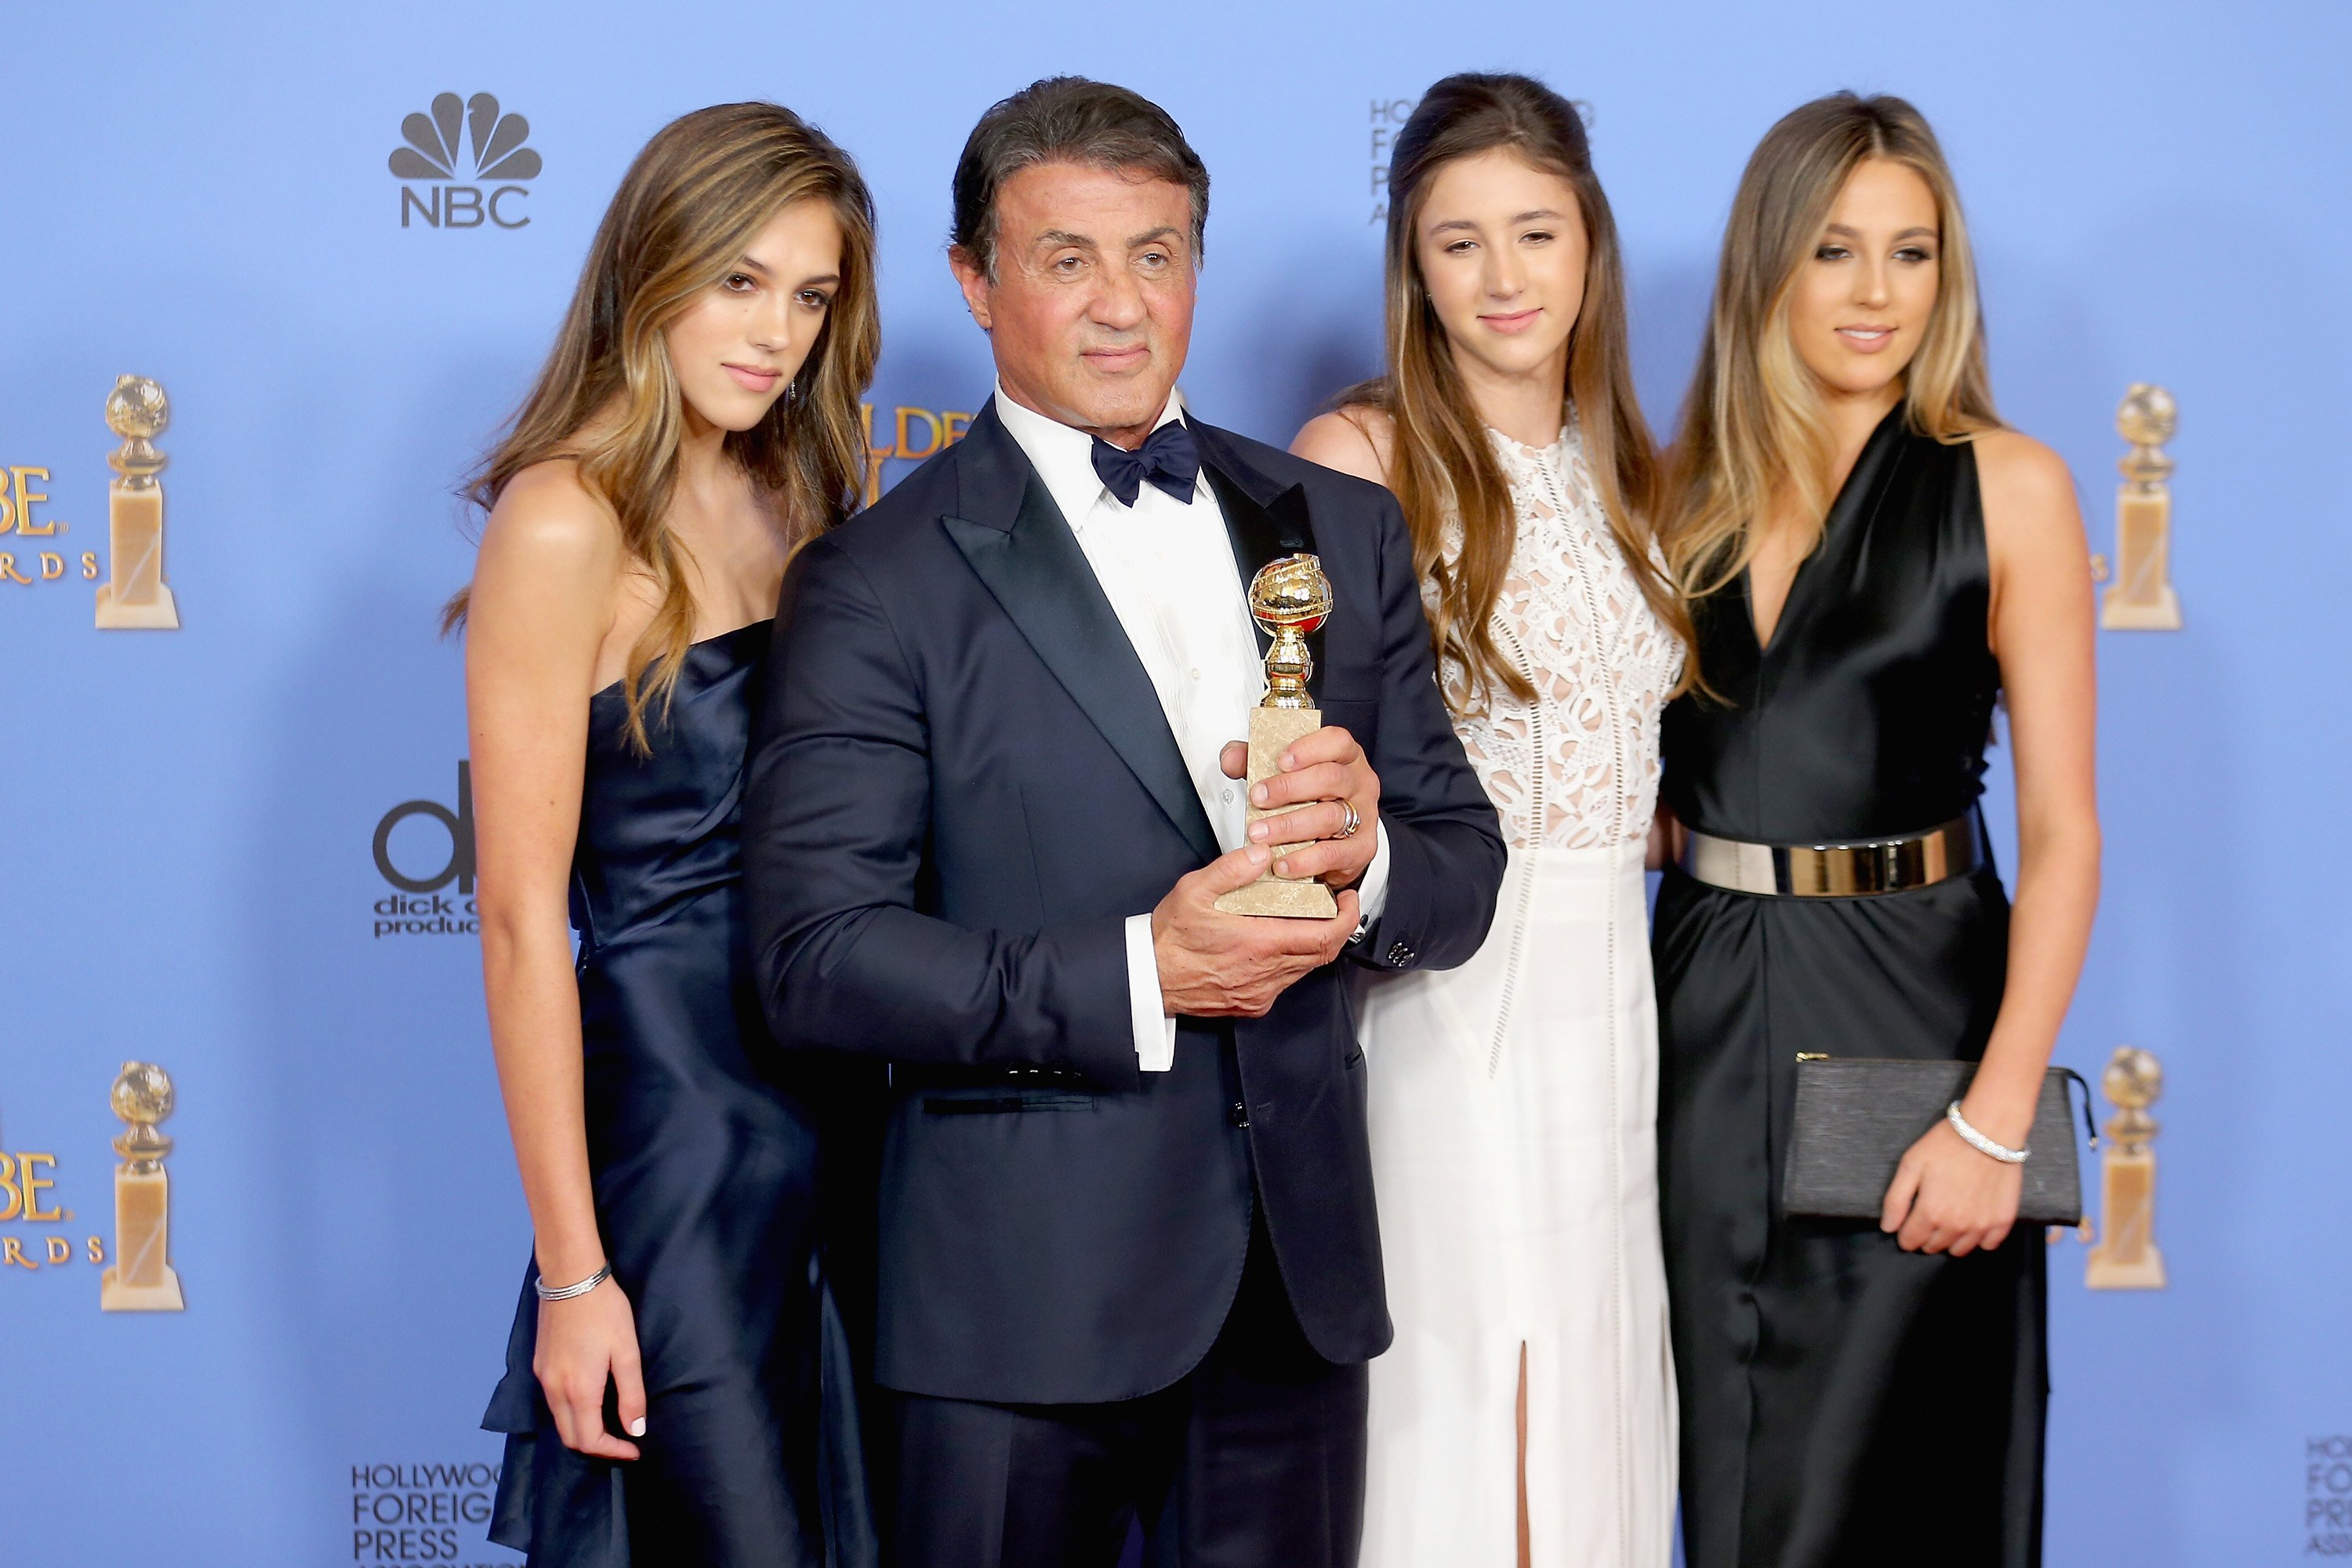 Image Credits: Getty Images / Mark Davis | Actor Sylvester Stallone (2nd L), winner of Best Supporting Performance in a Motion Picture for 'Creed,' poses in the press room with daughters Sistine, Sophia and Scarlet during the 73rd Annual Golden Globe Awards held at the Beverly Hilton Hotel on January 10, 2016 in Beverly Hills, California.